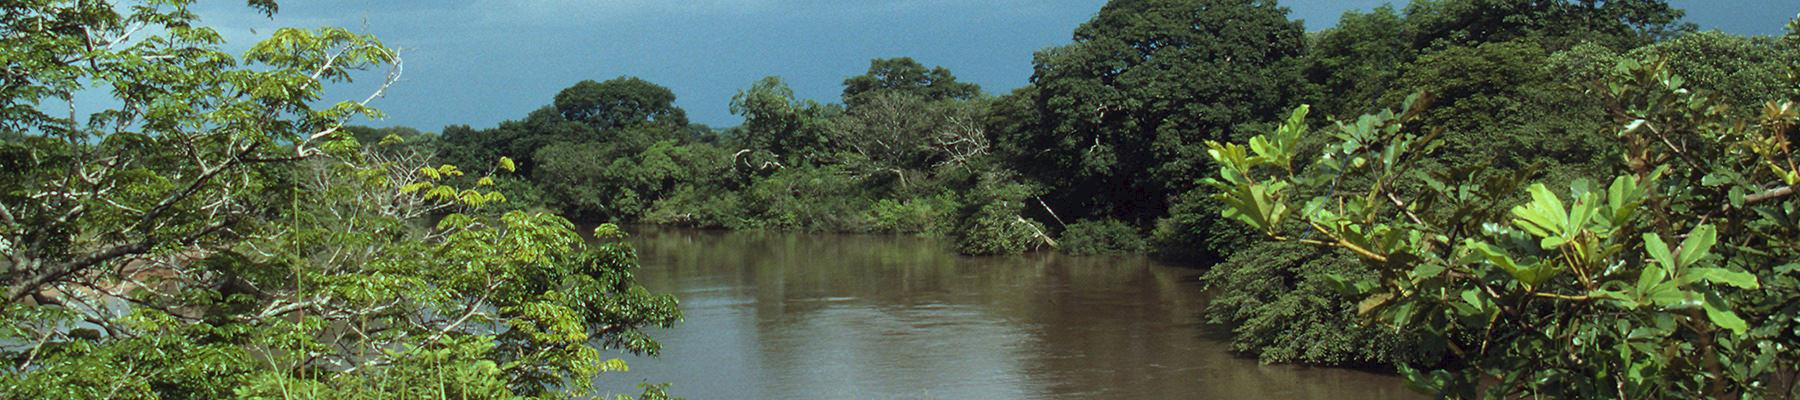 Garamba National Park - The Dungu River which weaves its way along the southern boundary © Sandra Mbanefo Obiago / WWF